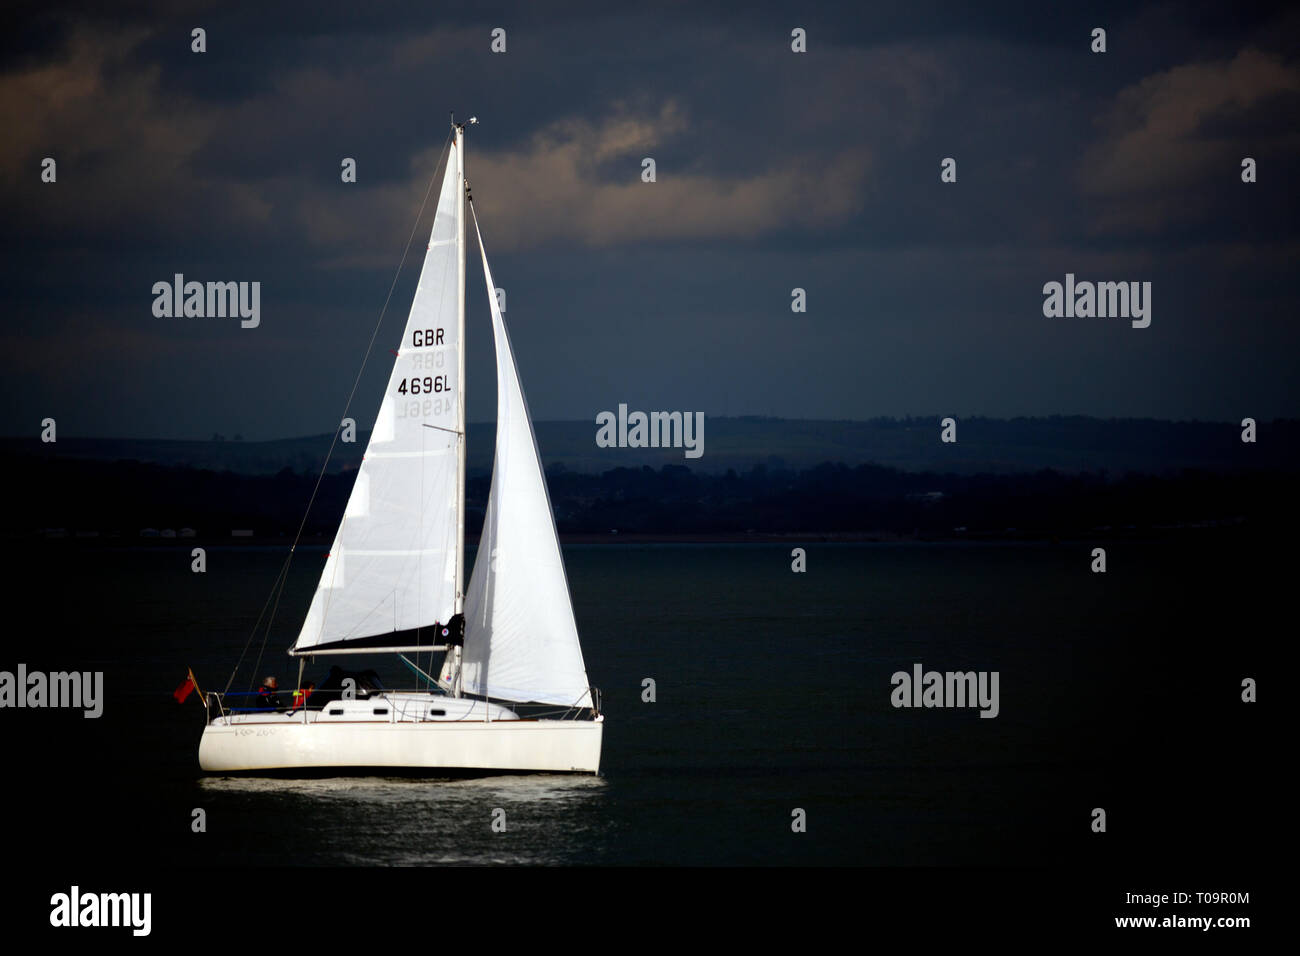 sailing,yacht,boat,in,bright,sunshine,with,dark,rain,storm,in,background,clouds,The Solent,Cowes,Isle of Wight,England, UK, Stock Photo